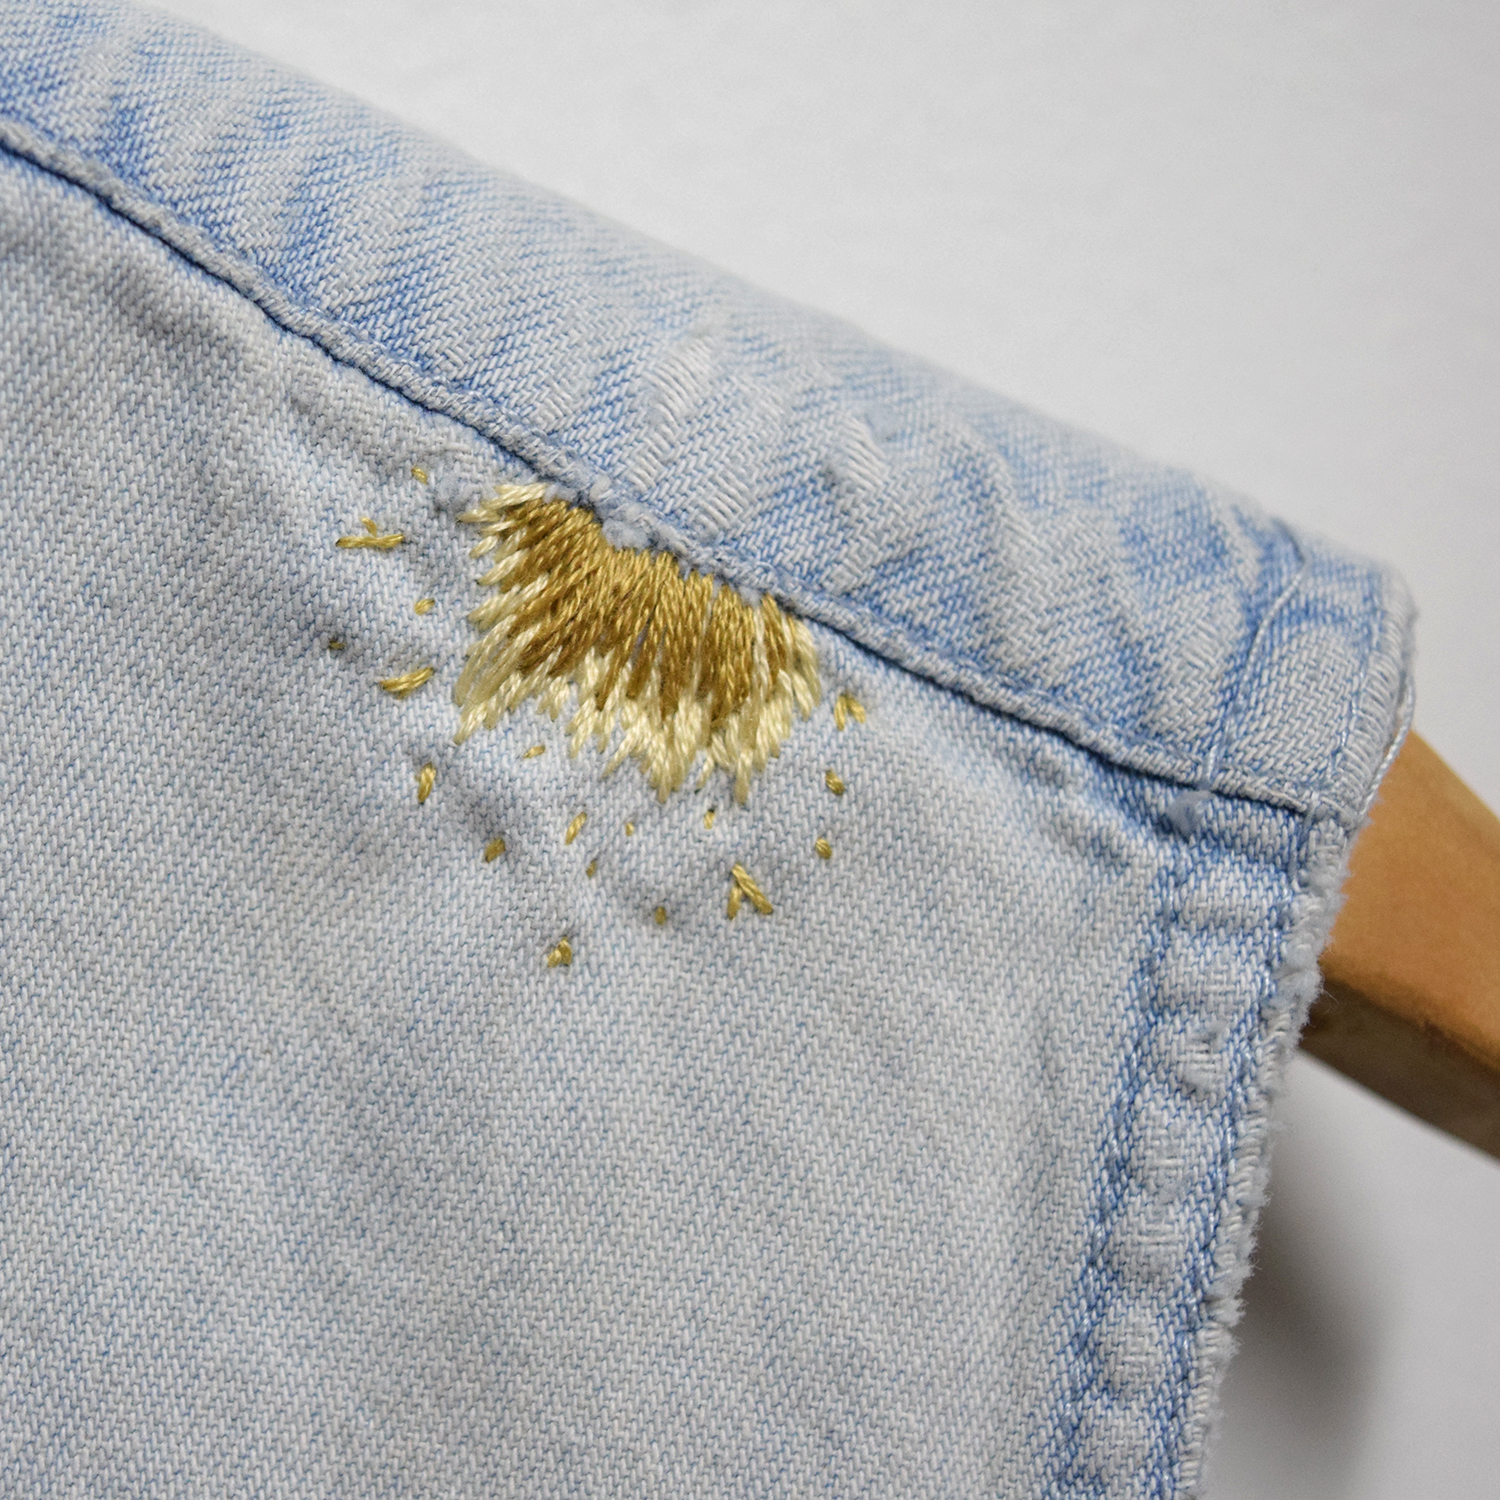 Embroidery Embellishments:Wednesday, November 8.6-7:30pm - Working with satin, blanket, and chain stitches, we will teach you how to embroider your way around stains, tears and mends.